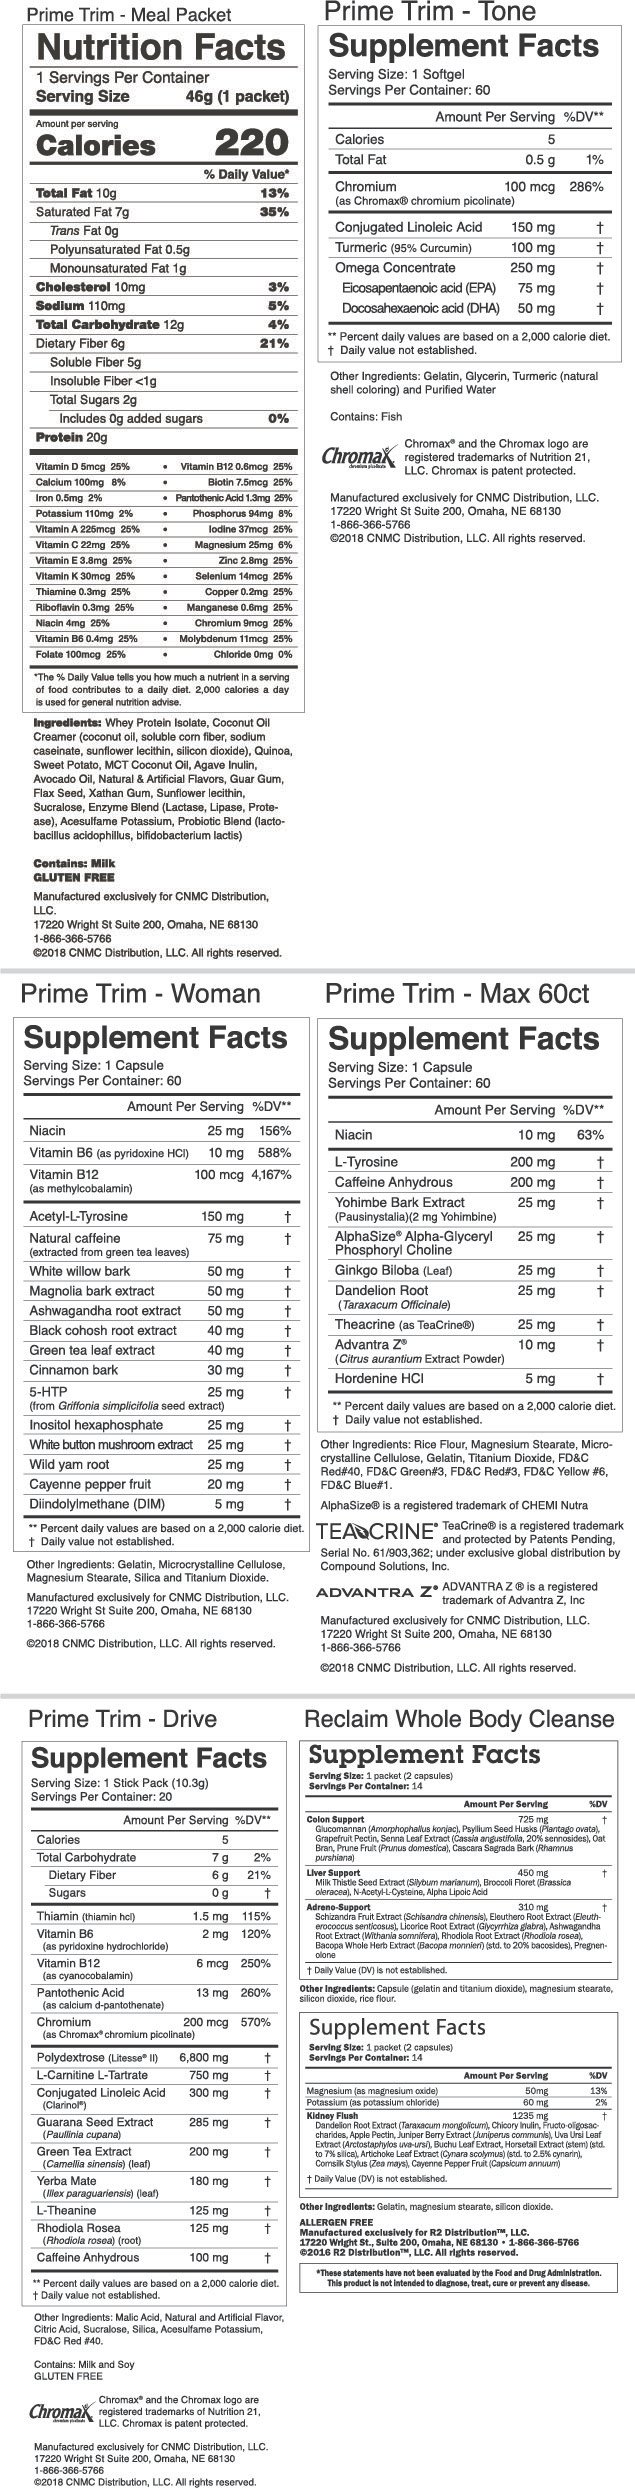 Prime Trim Complete 30 Day System + FREE Cleanse & Shaker Cup -Nutrition Facts